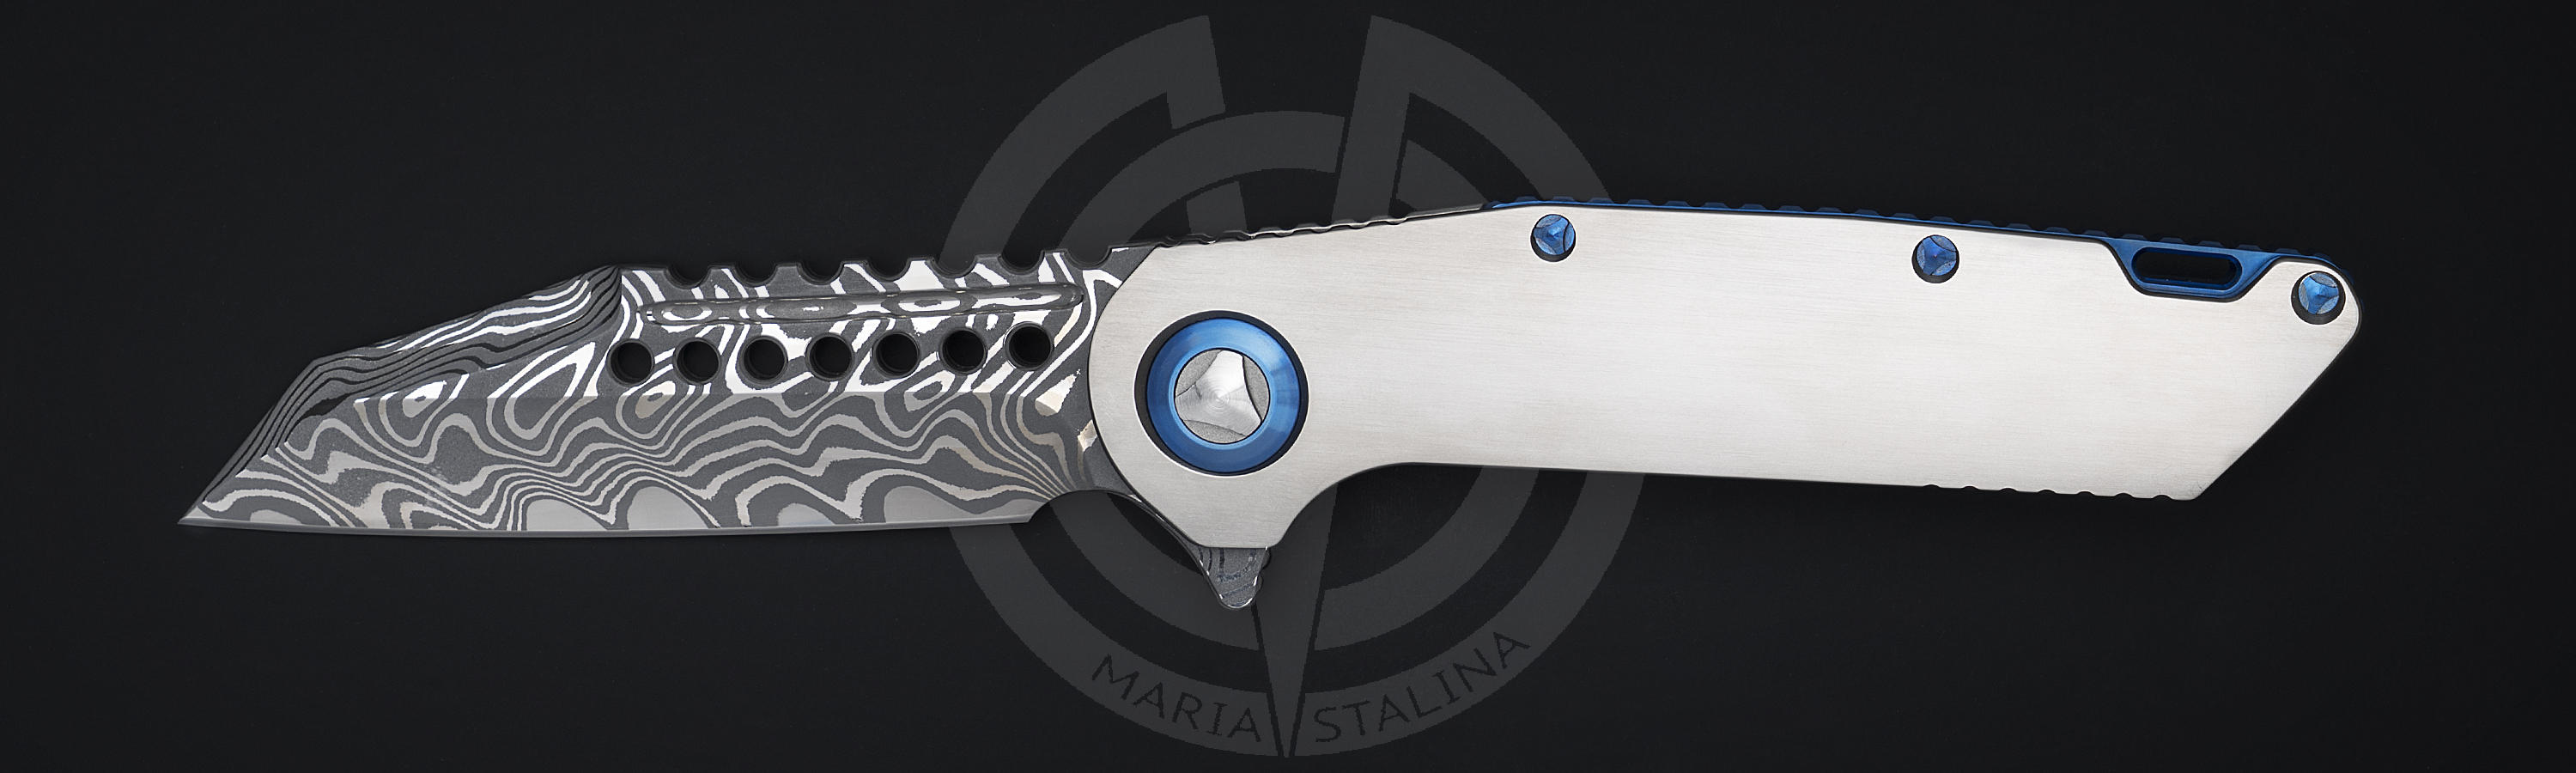 Marfione custom knives